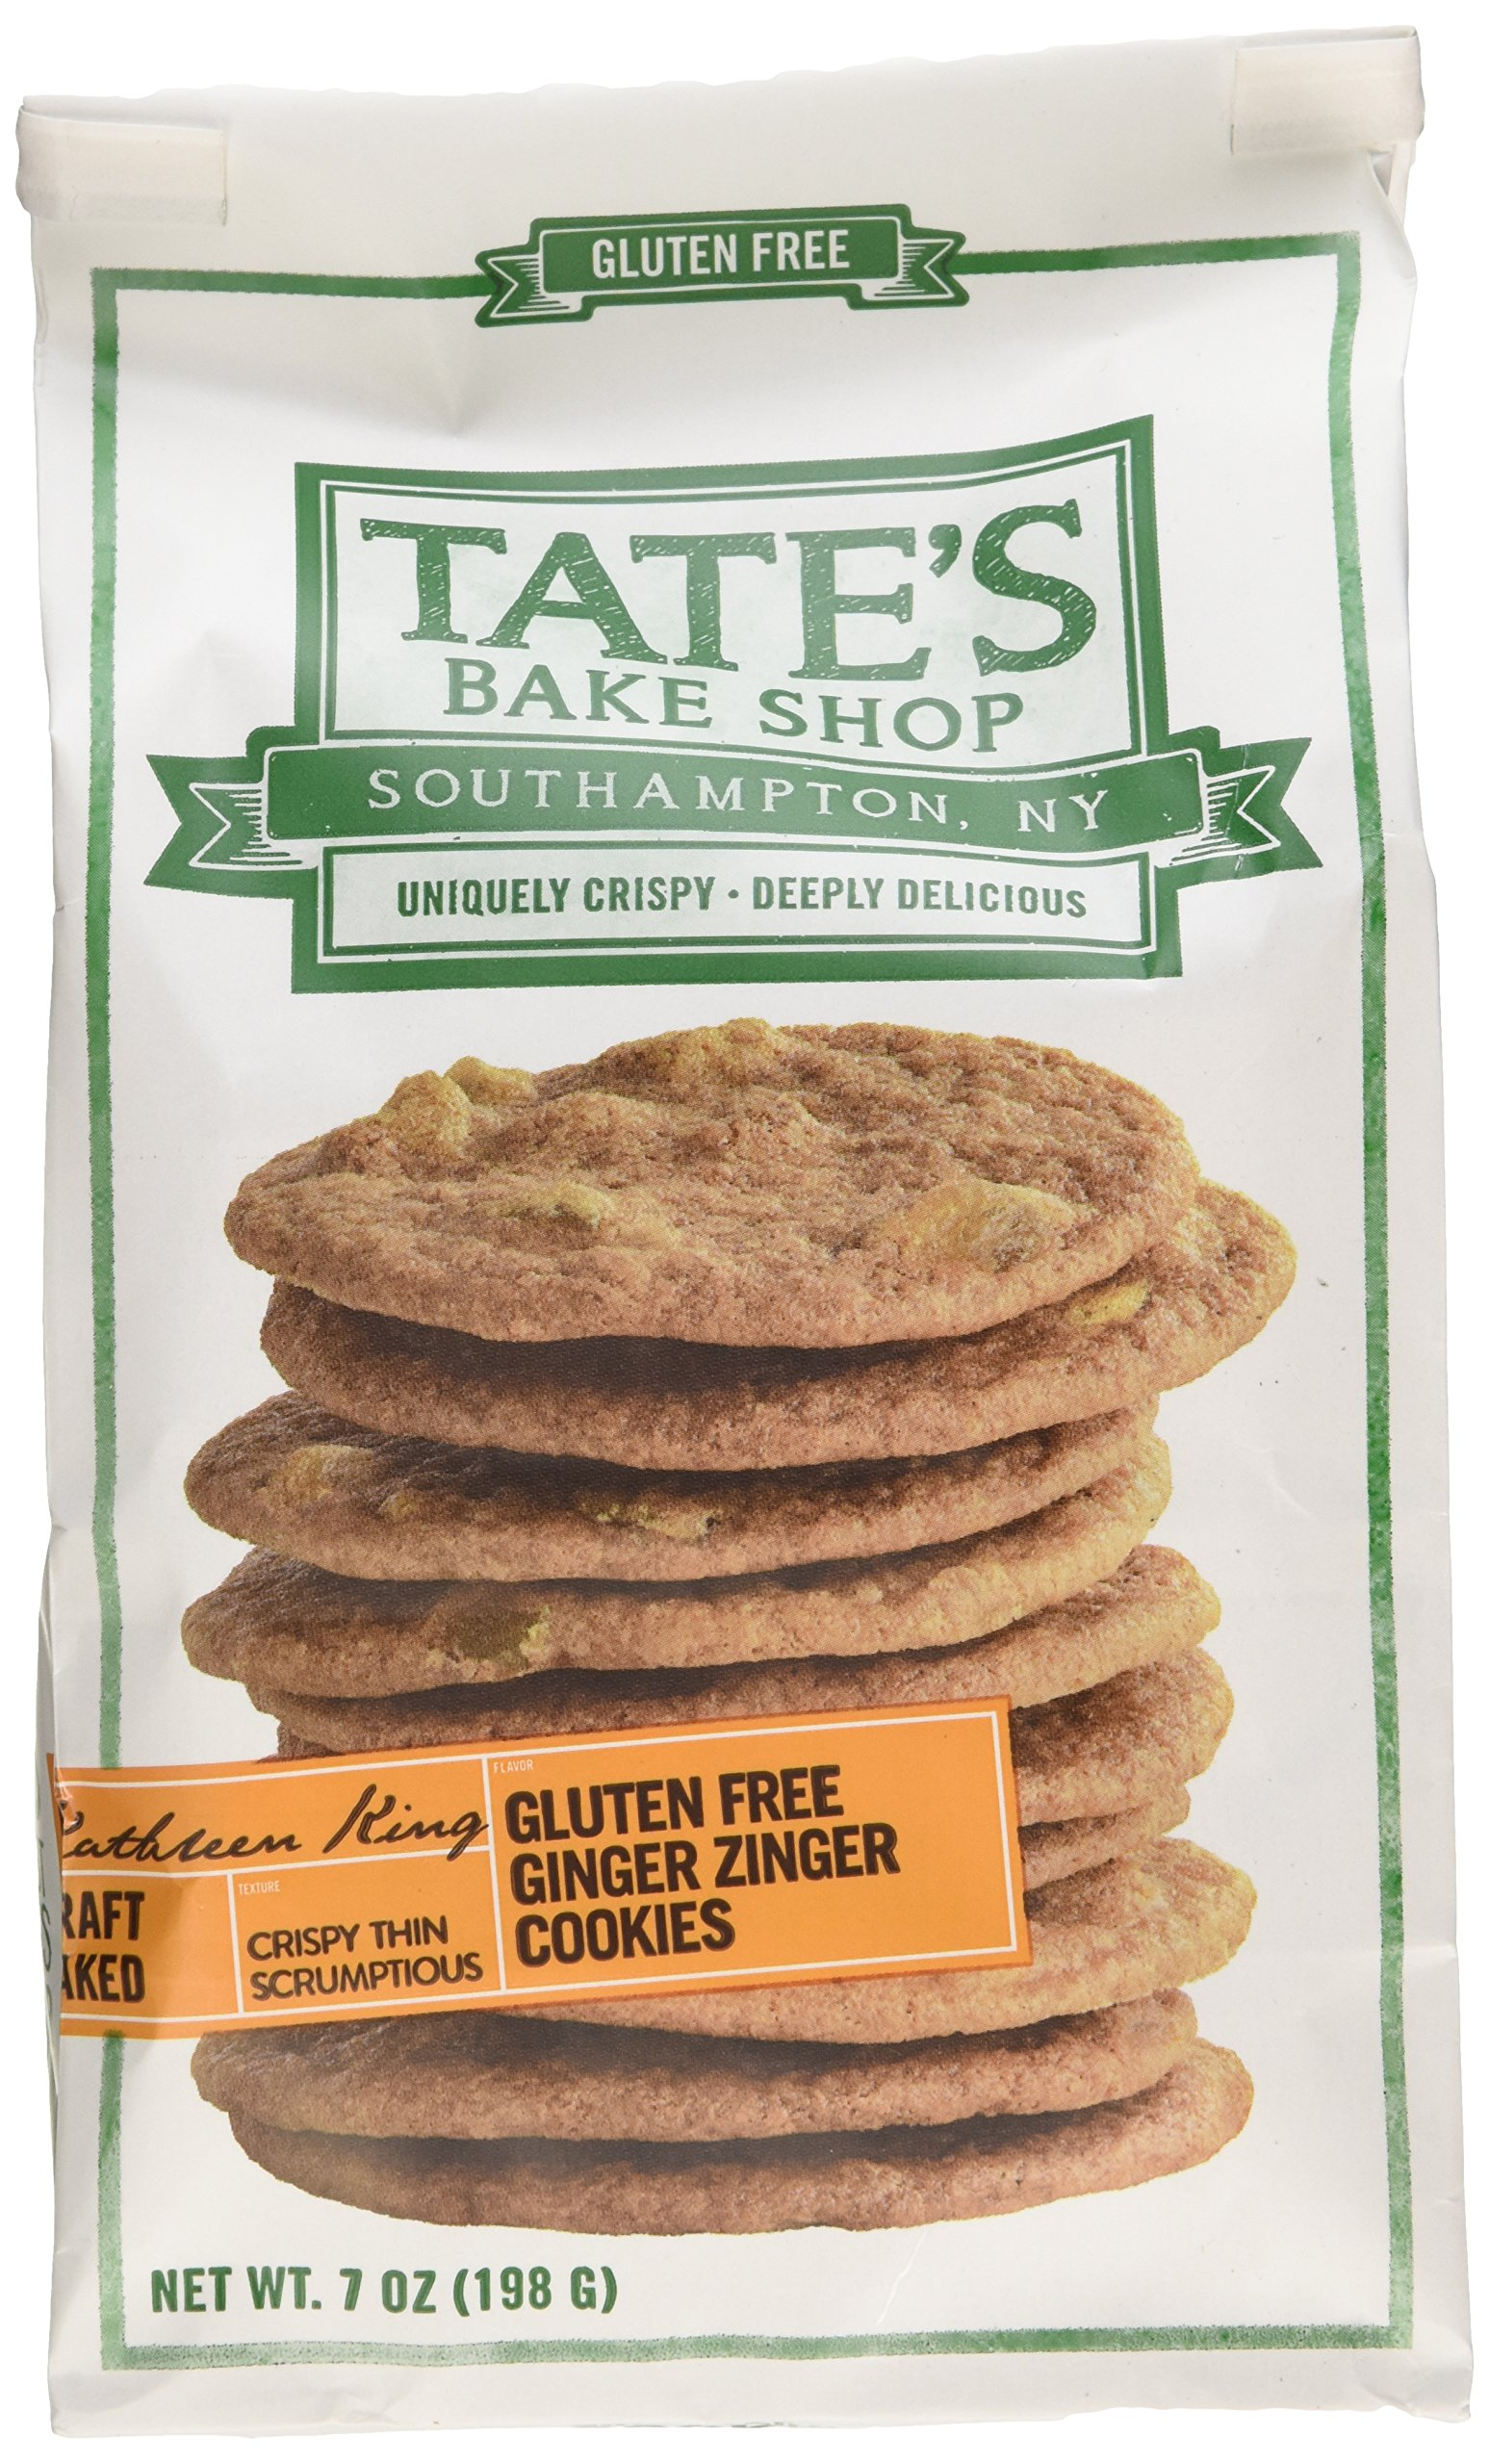 Tate's Bake Shop Gluten Free Ginger Zinger Cookies, 7oz Bag, Pack of 3 by Tate's Bake Shop